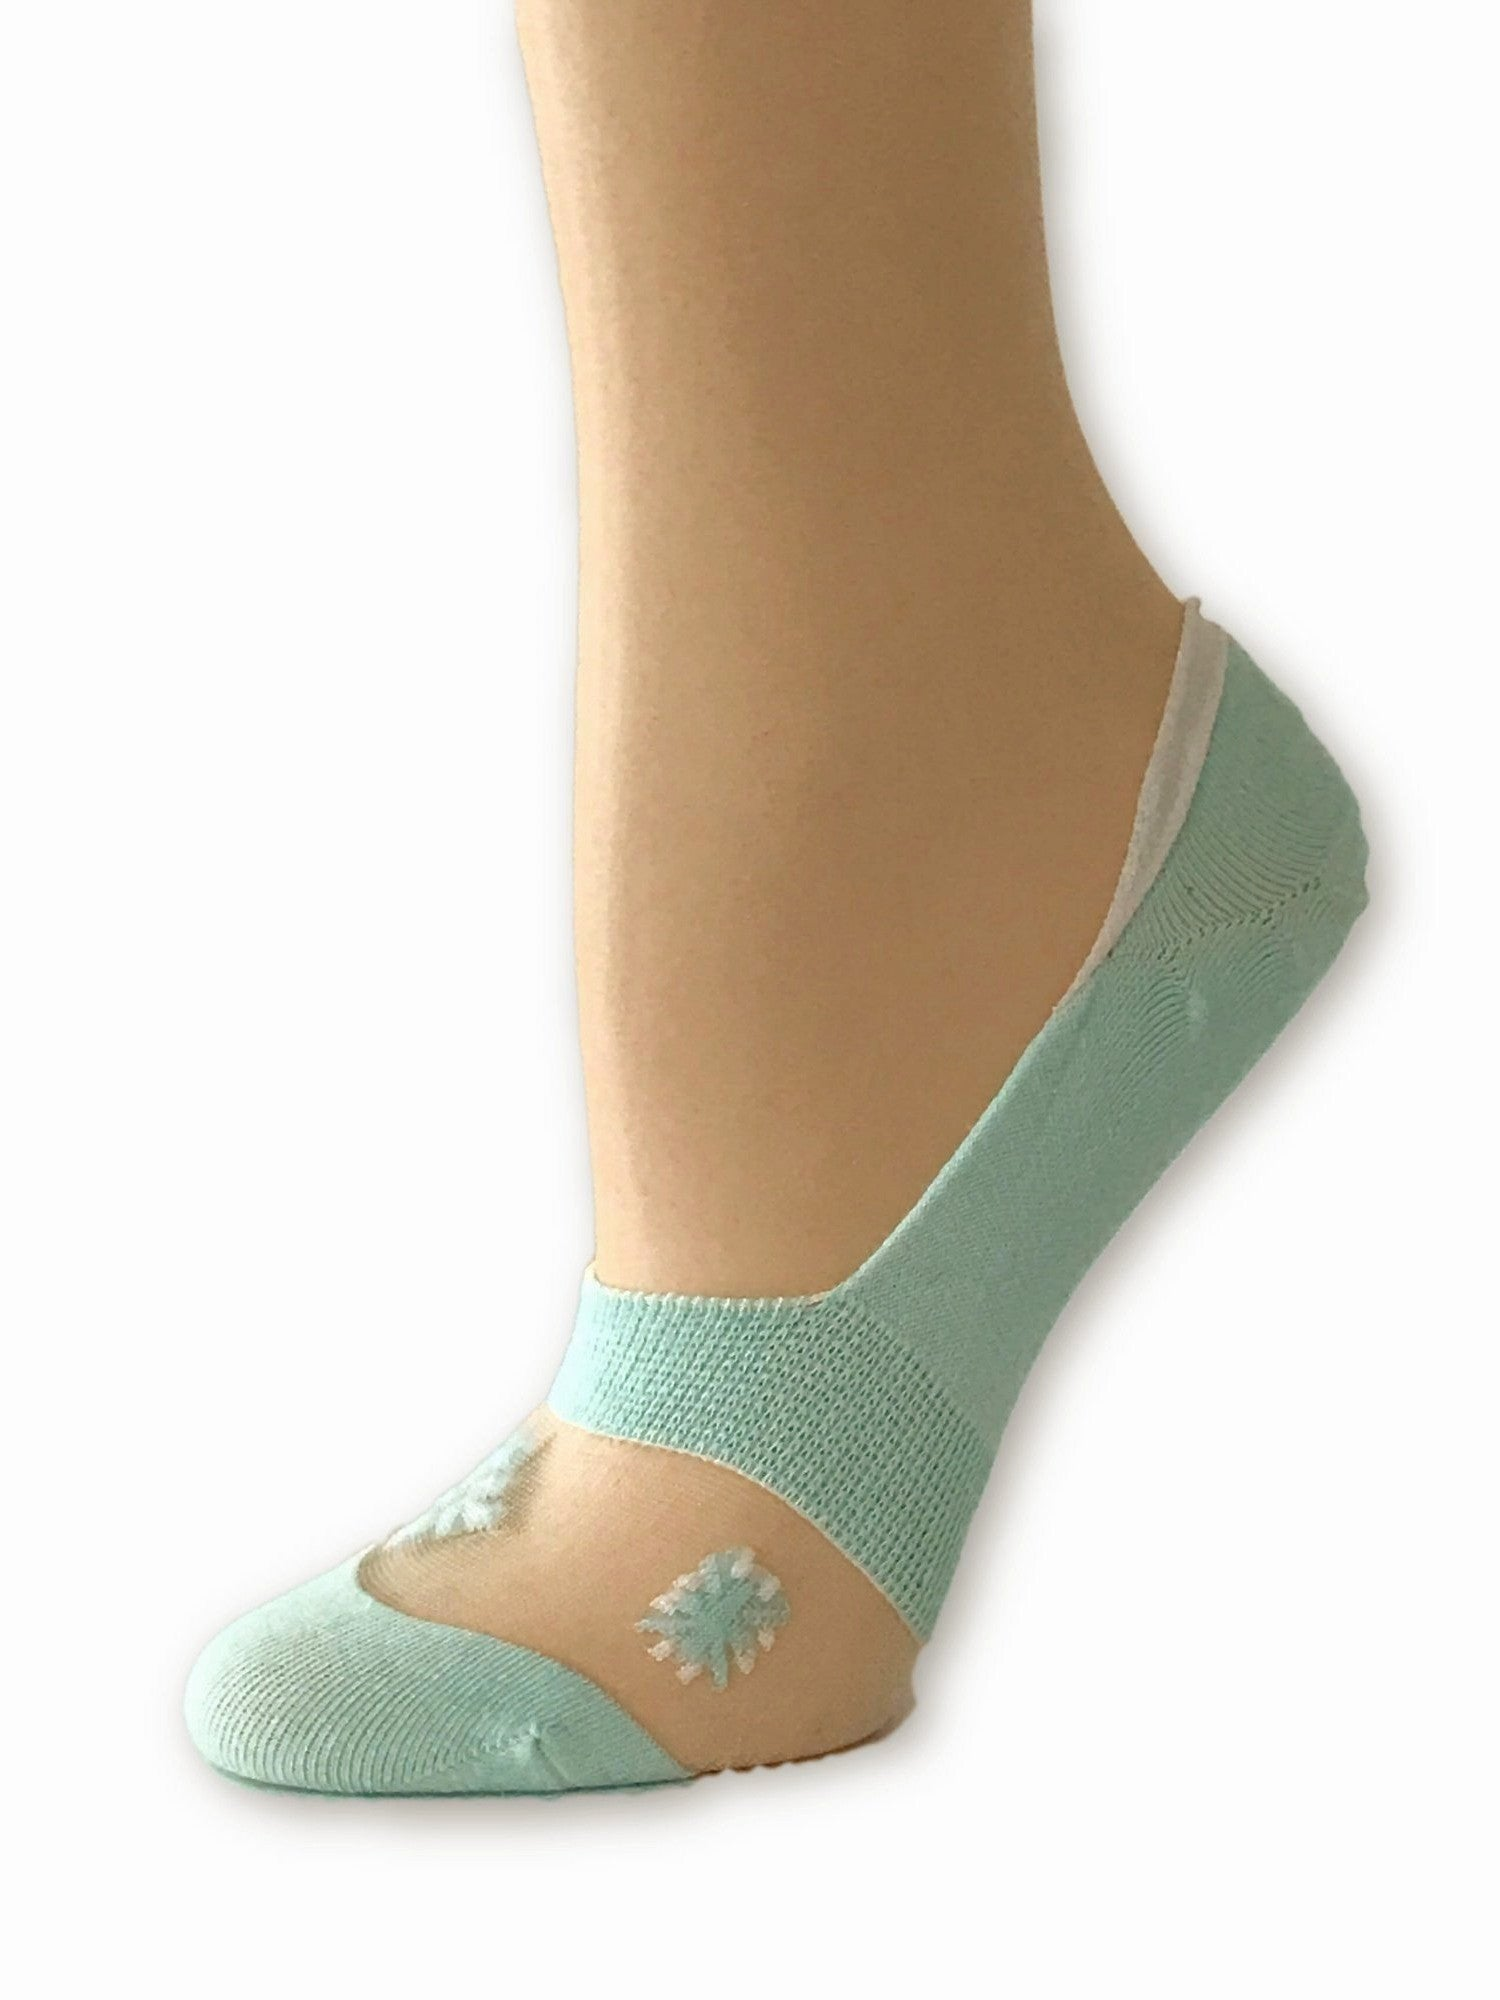 One-Stripped Turquoise Ankle Sheer Socks - Global Trendz Fashion®